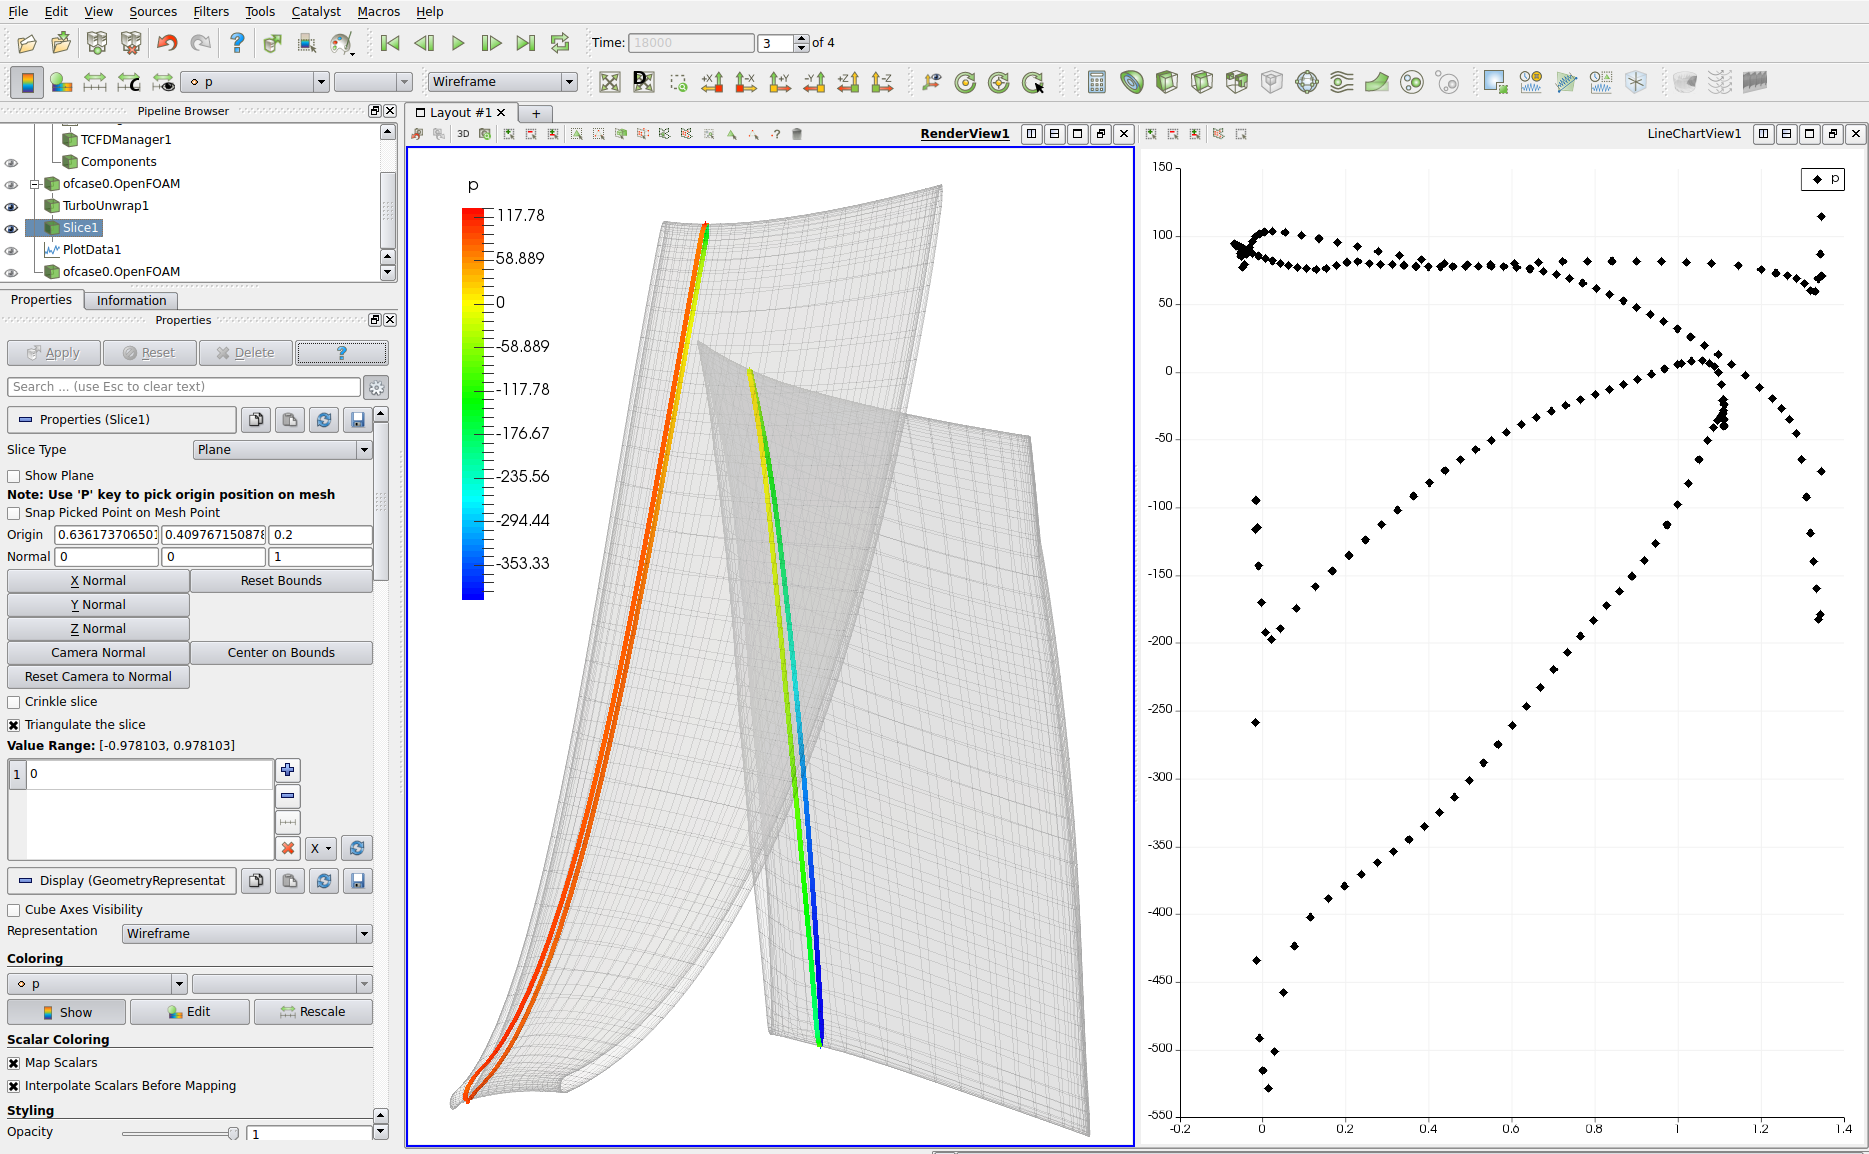 Axial Pump Turbomachinery CFD Blade-to-Blade Plot Around Blade20